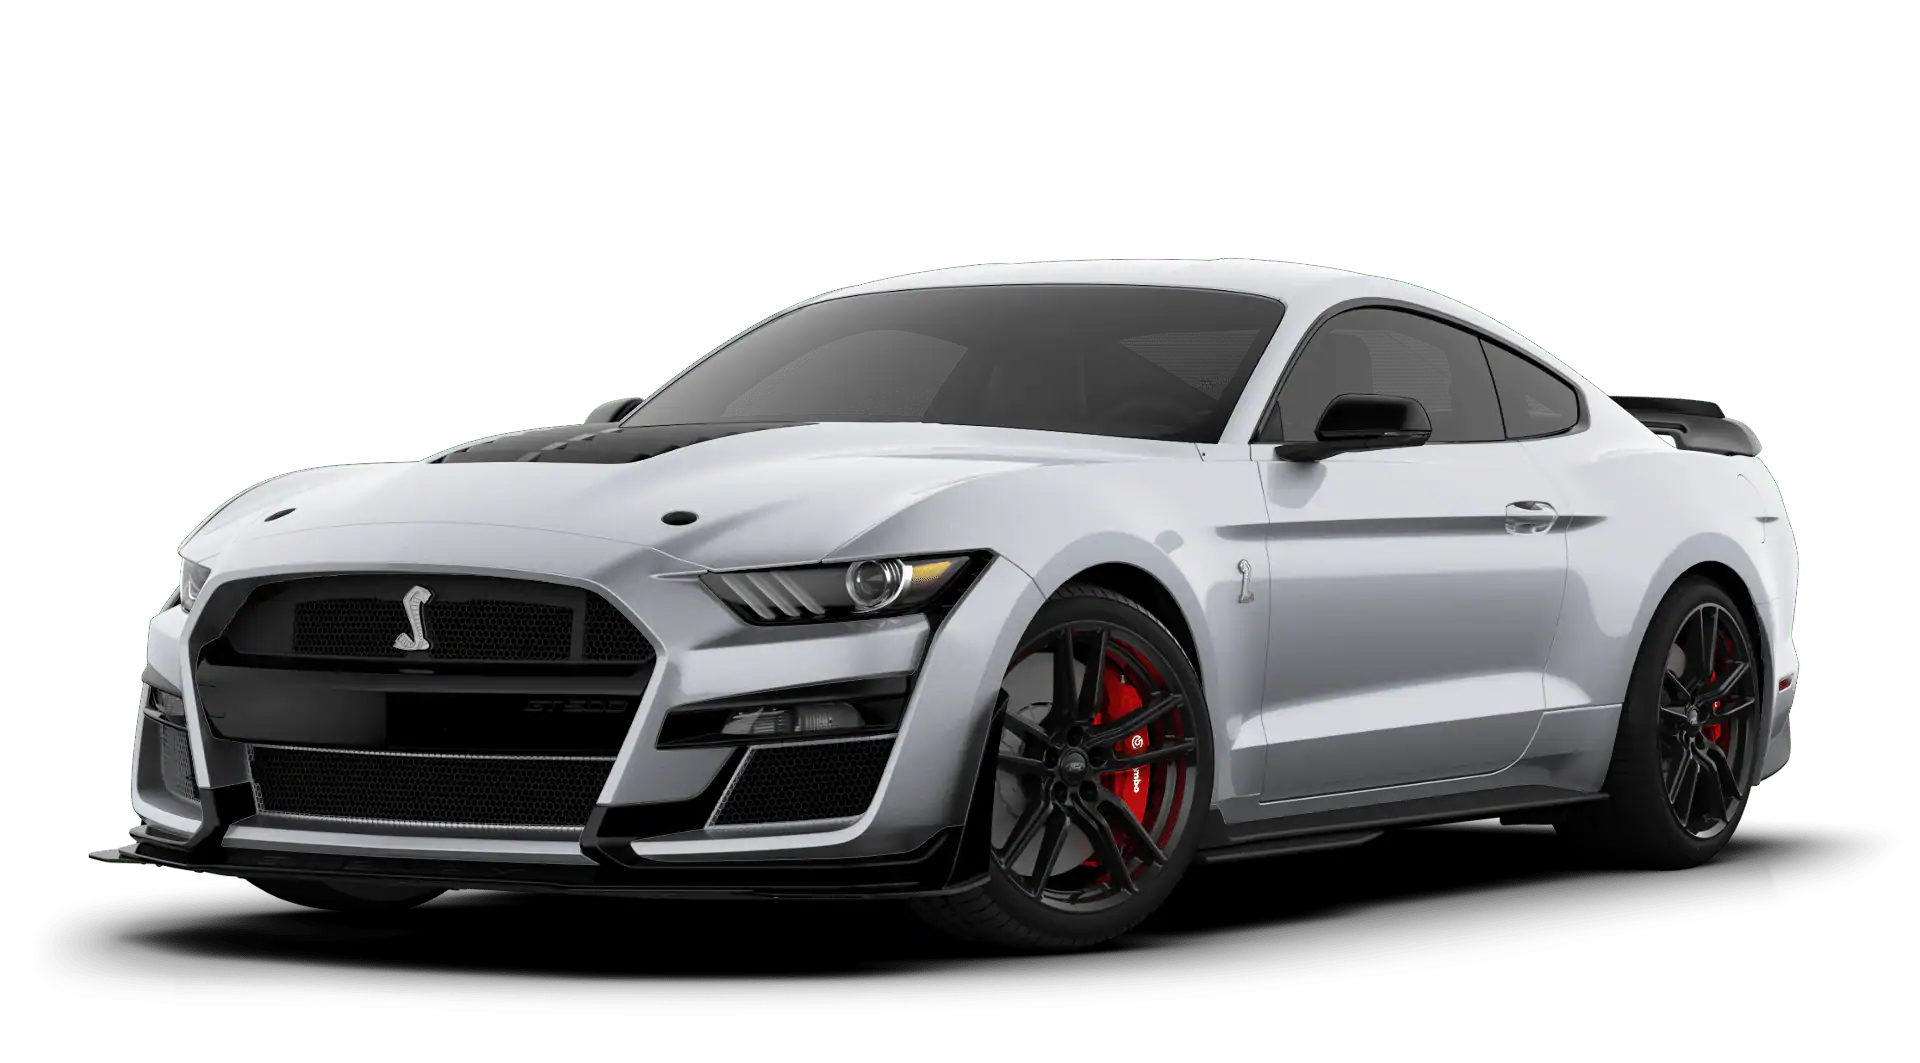 2020 Ford Mustang Shelby GT500 Iconic Silver